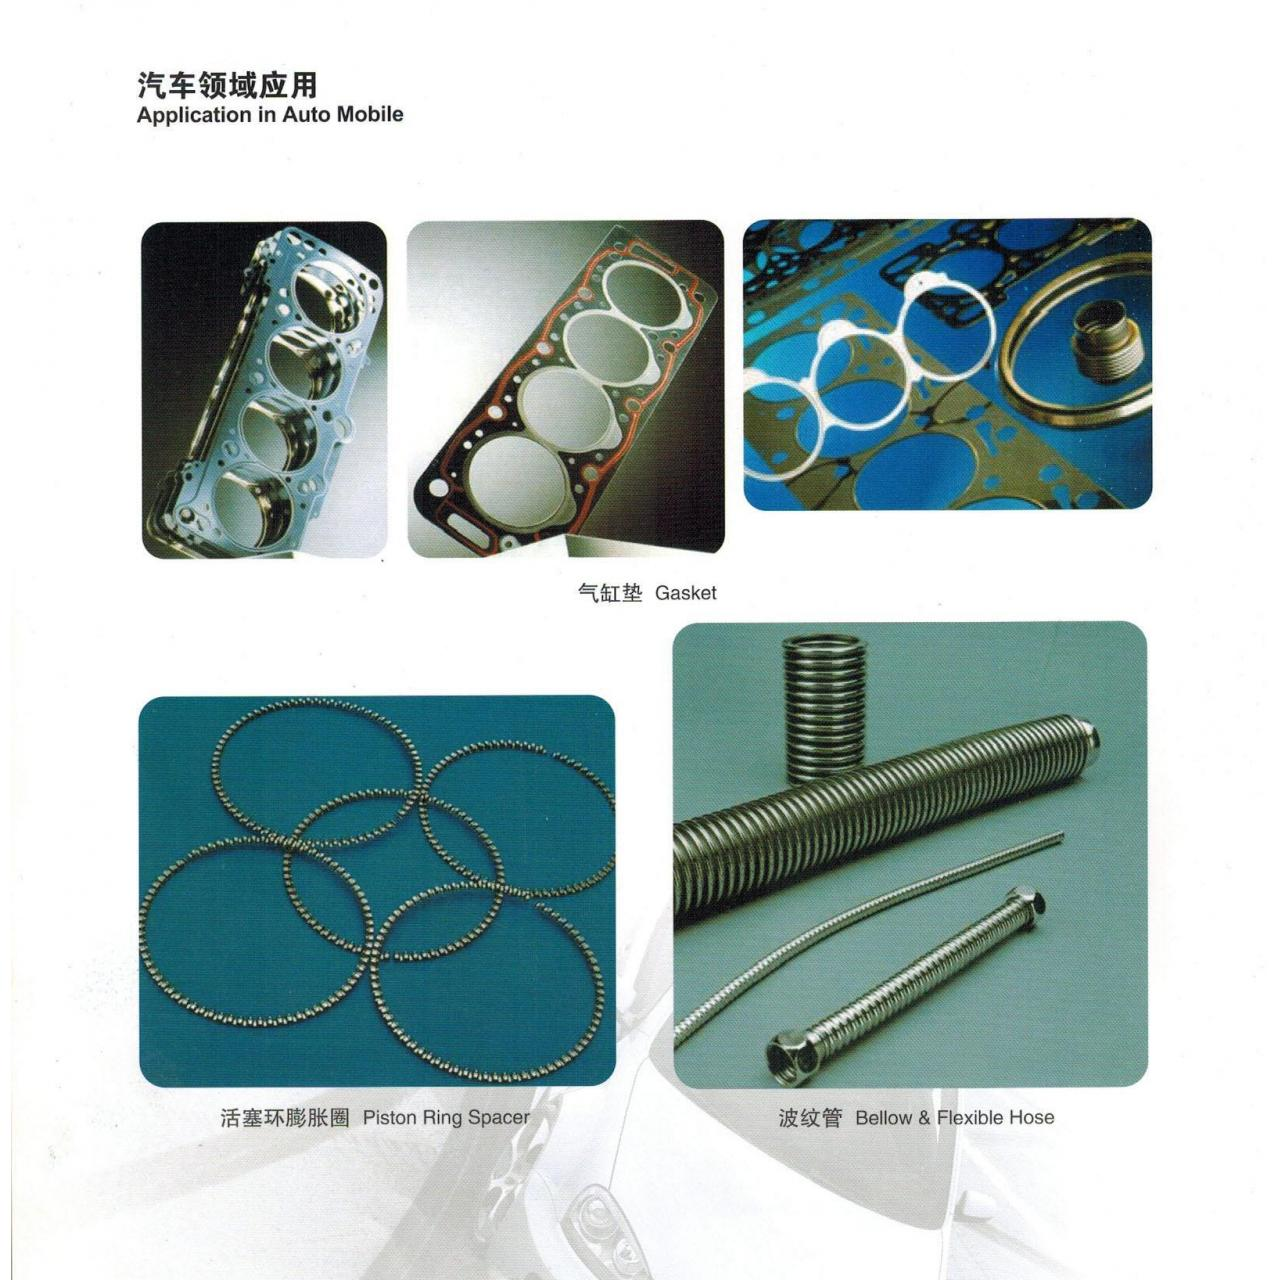 China Automotive Applications wholesale